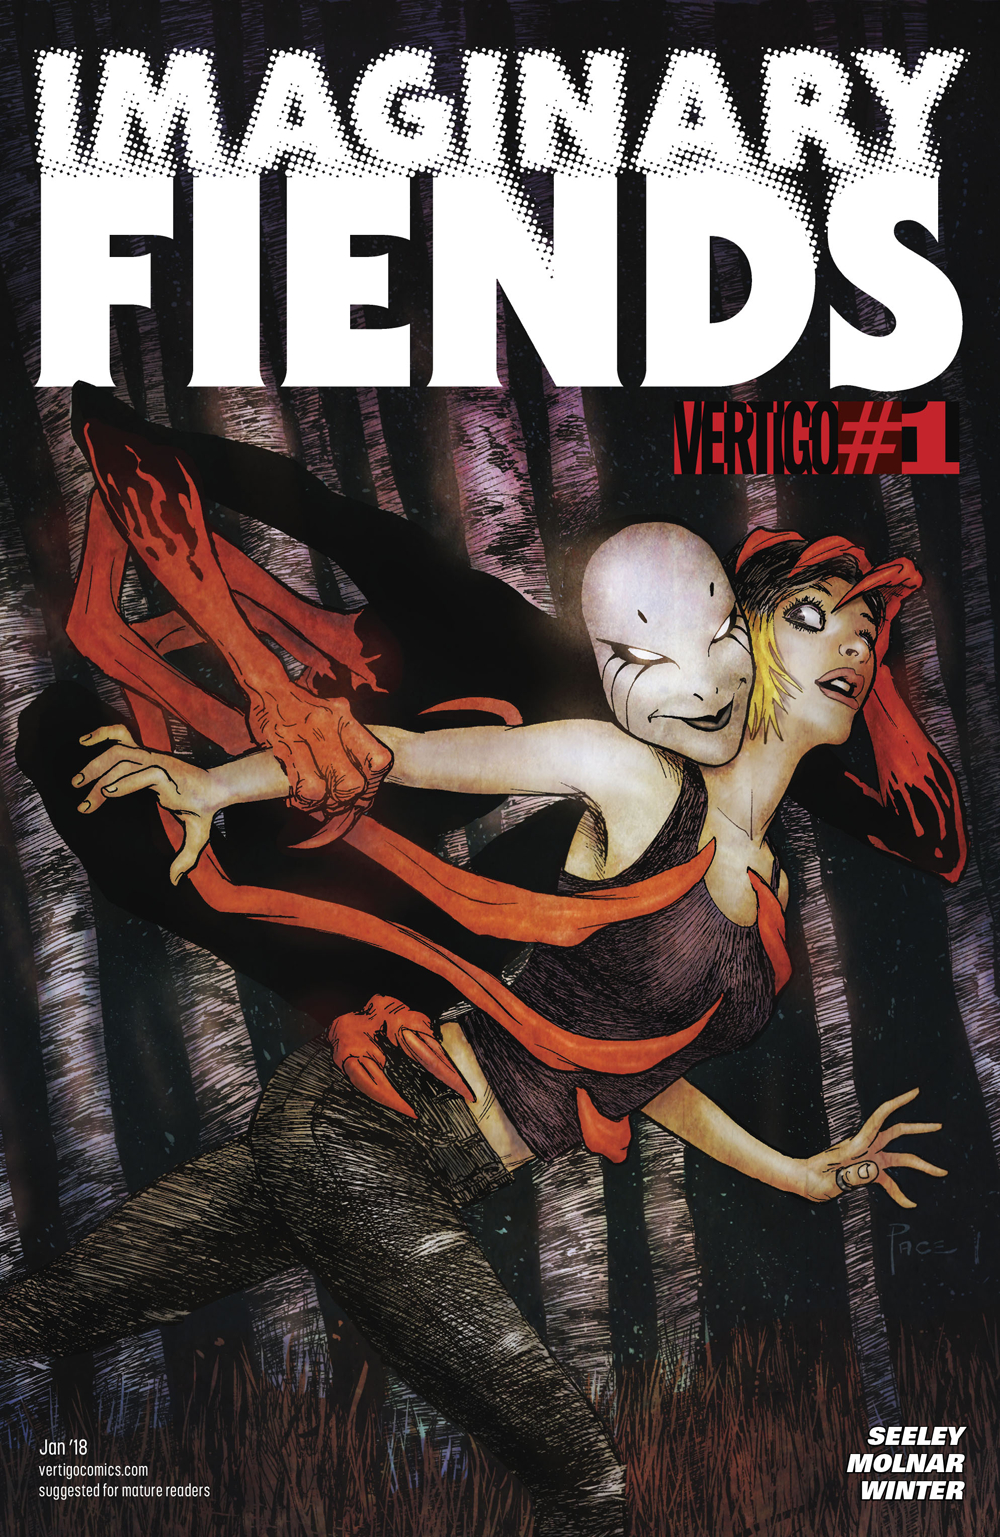 IMAGINARY FIENDS #1 (OF 6) (MR)